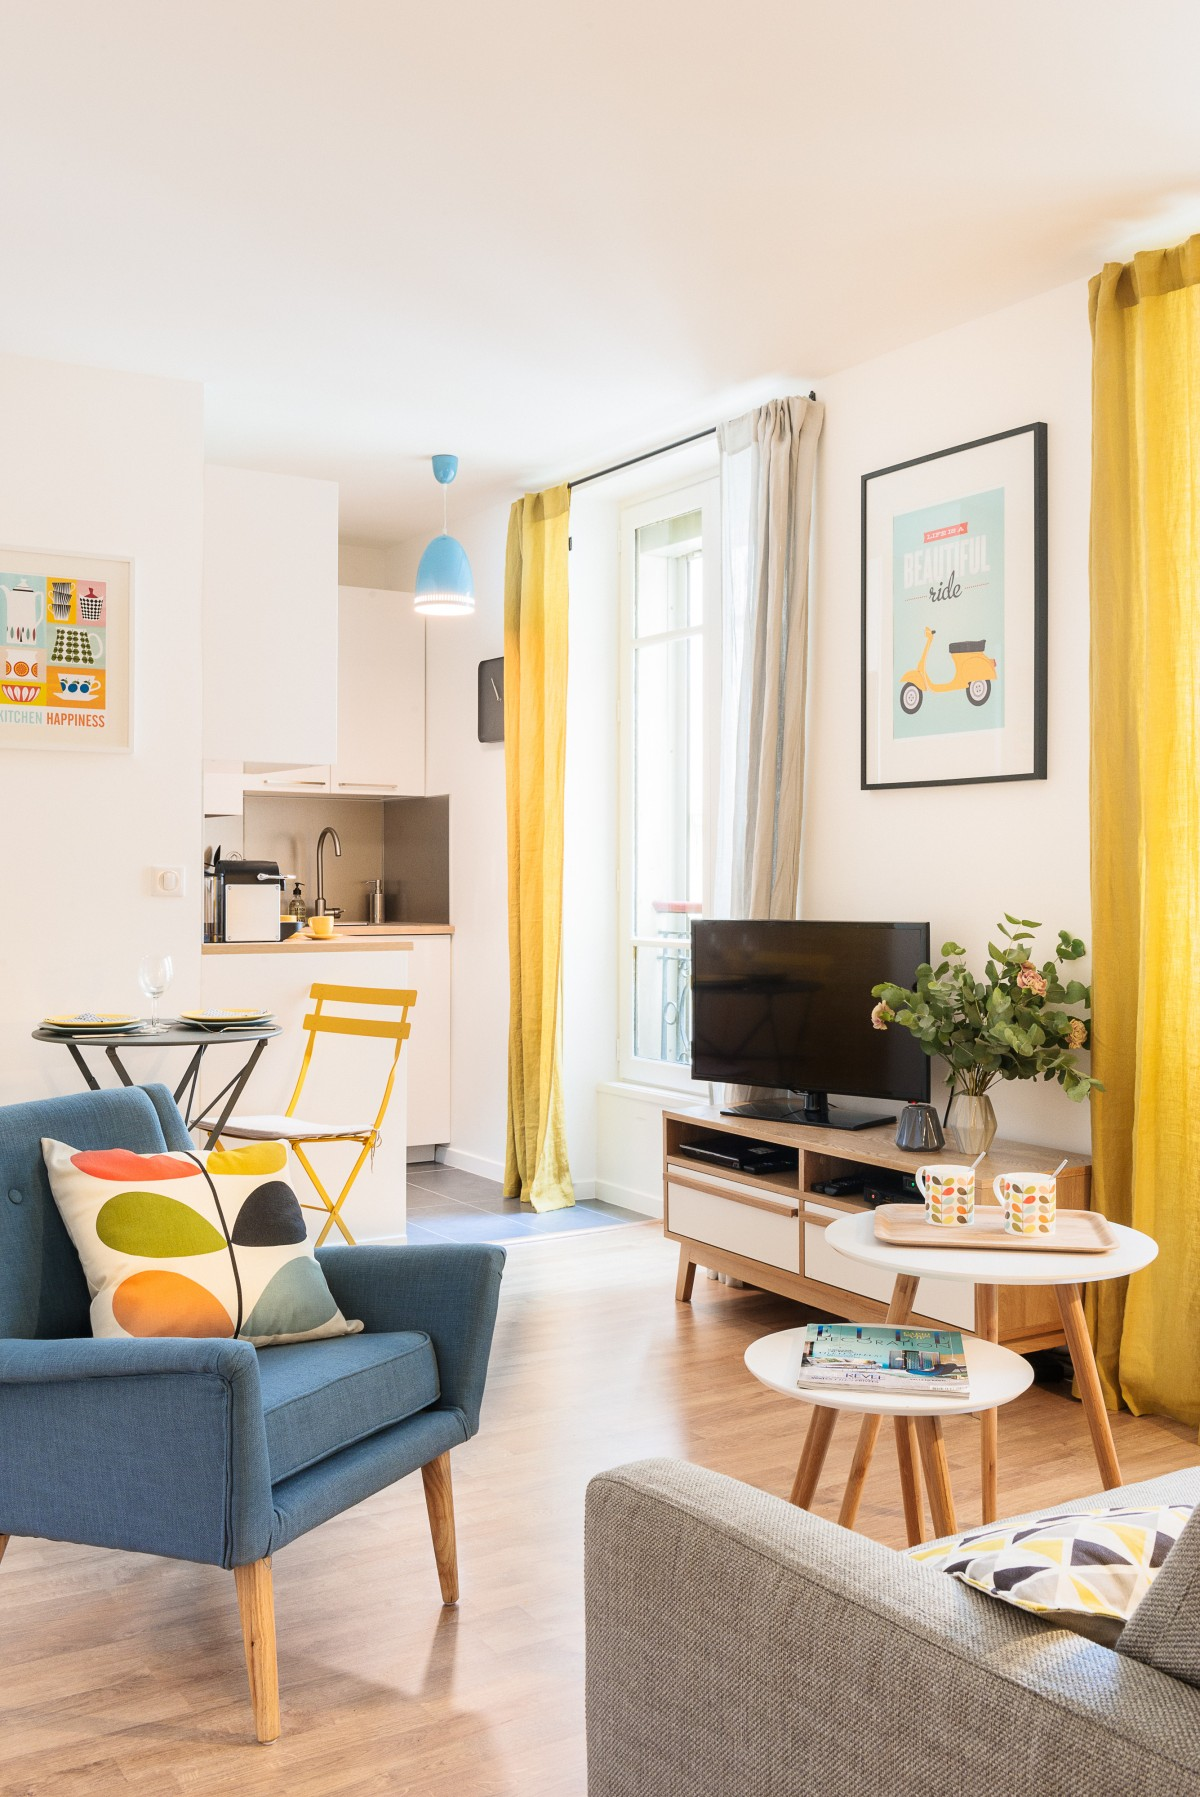 D coration appartement paris marion alberge d coratrice - Comment decorer un appartement blanc ...